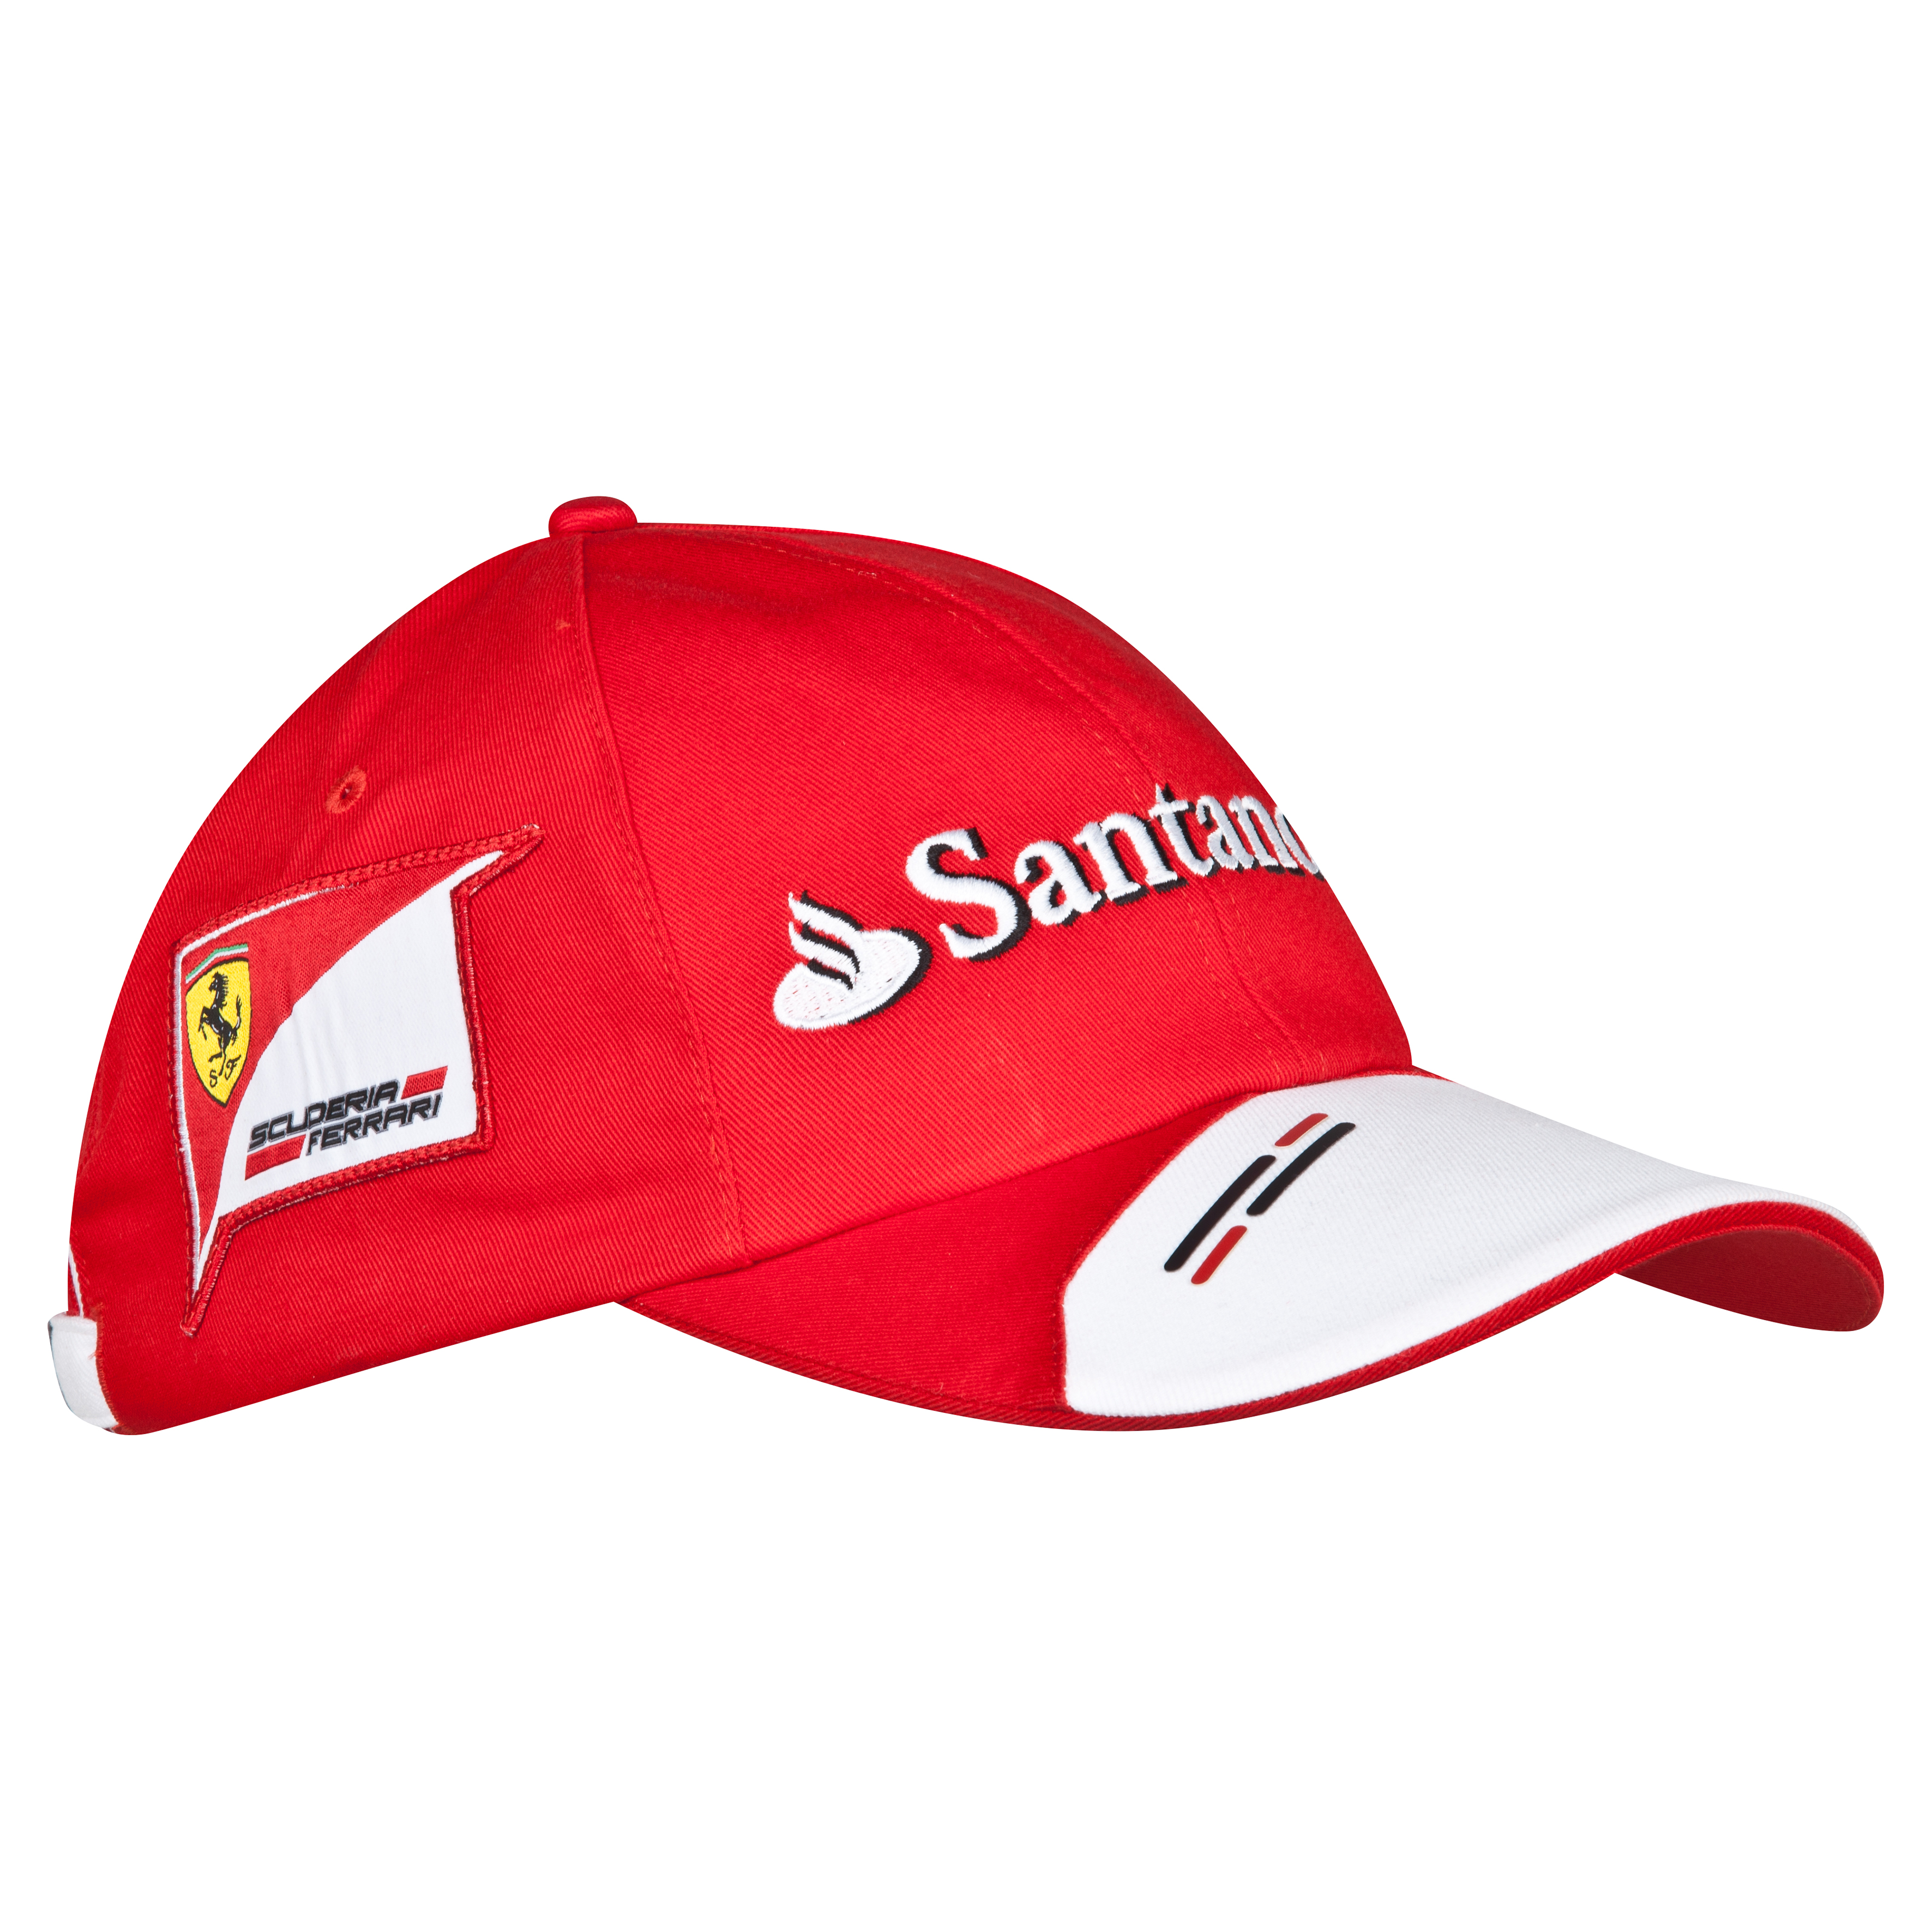 Scuderia Ferrari 2013 Team Cap Red